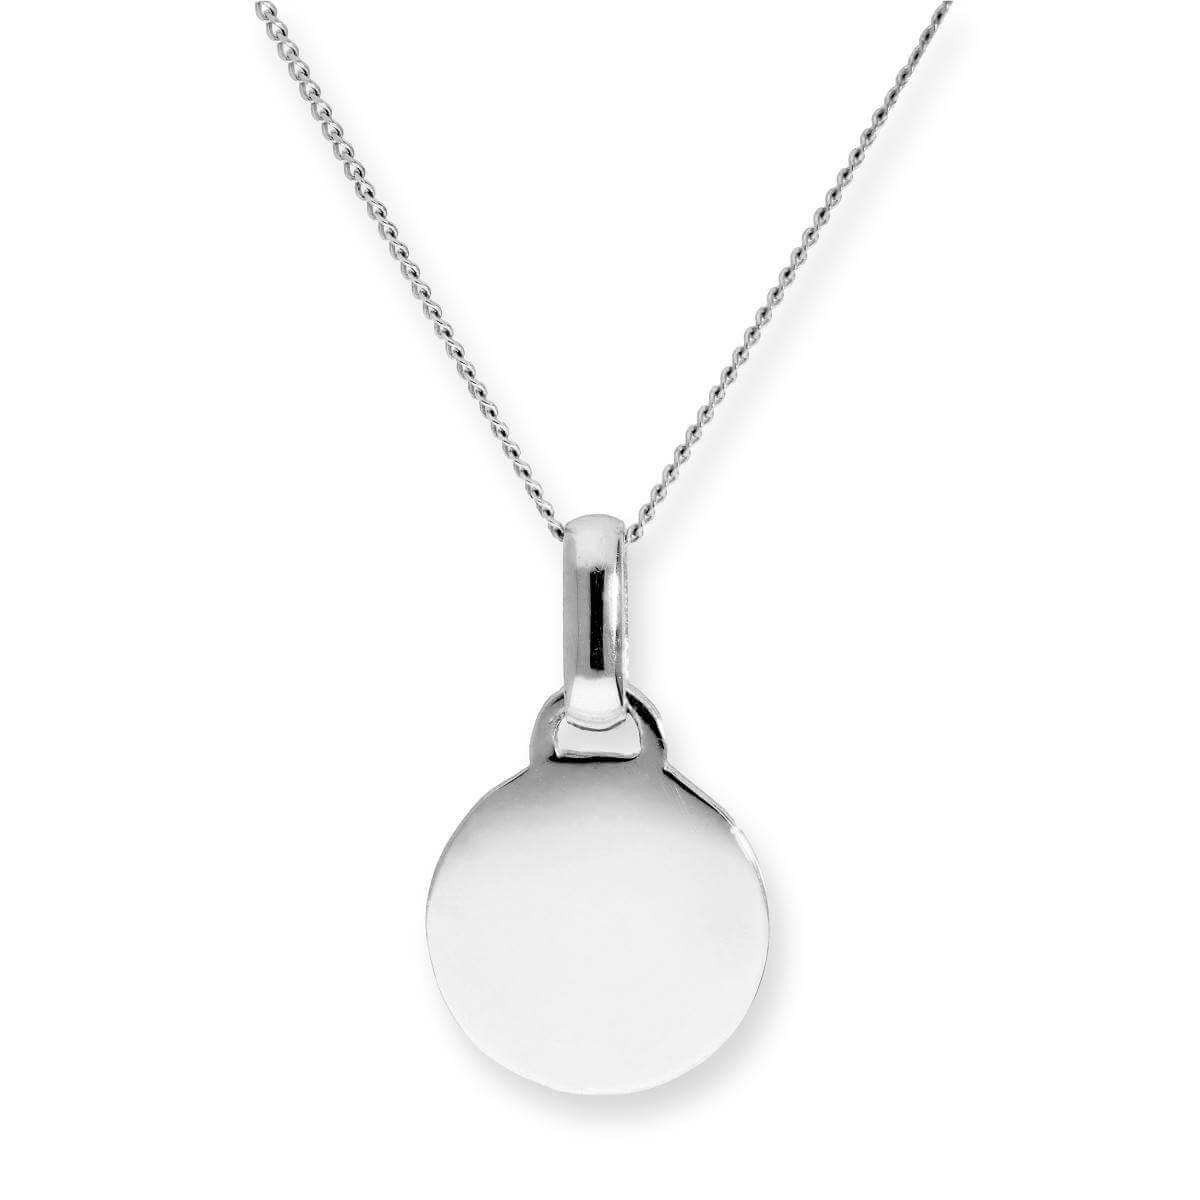 9ct White Gold Engravable Round Pendant Necklace 16-20 Inches